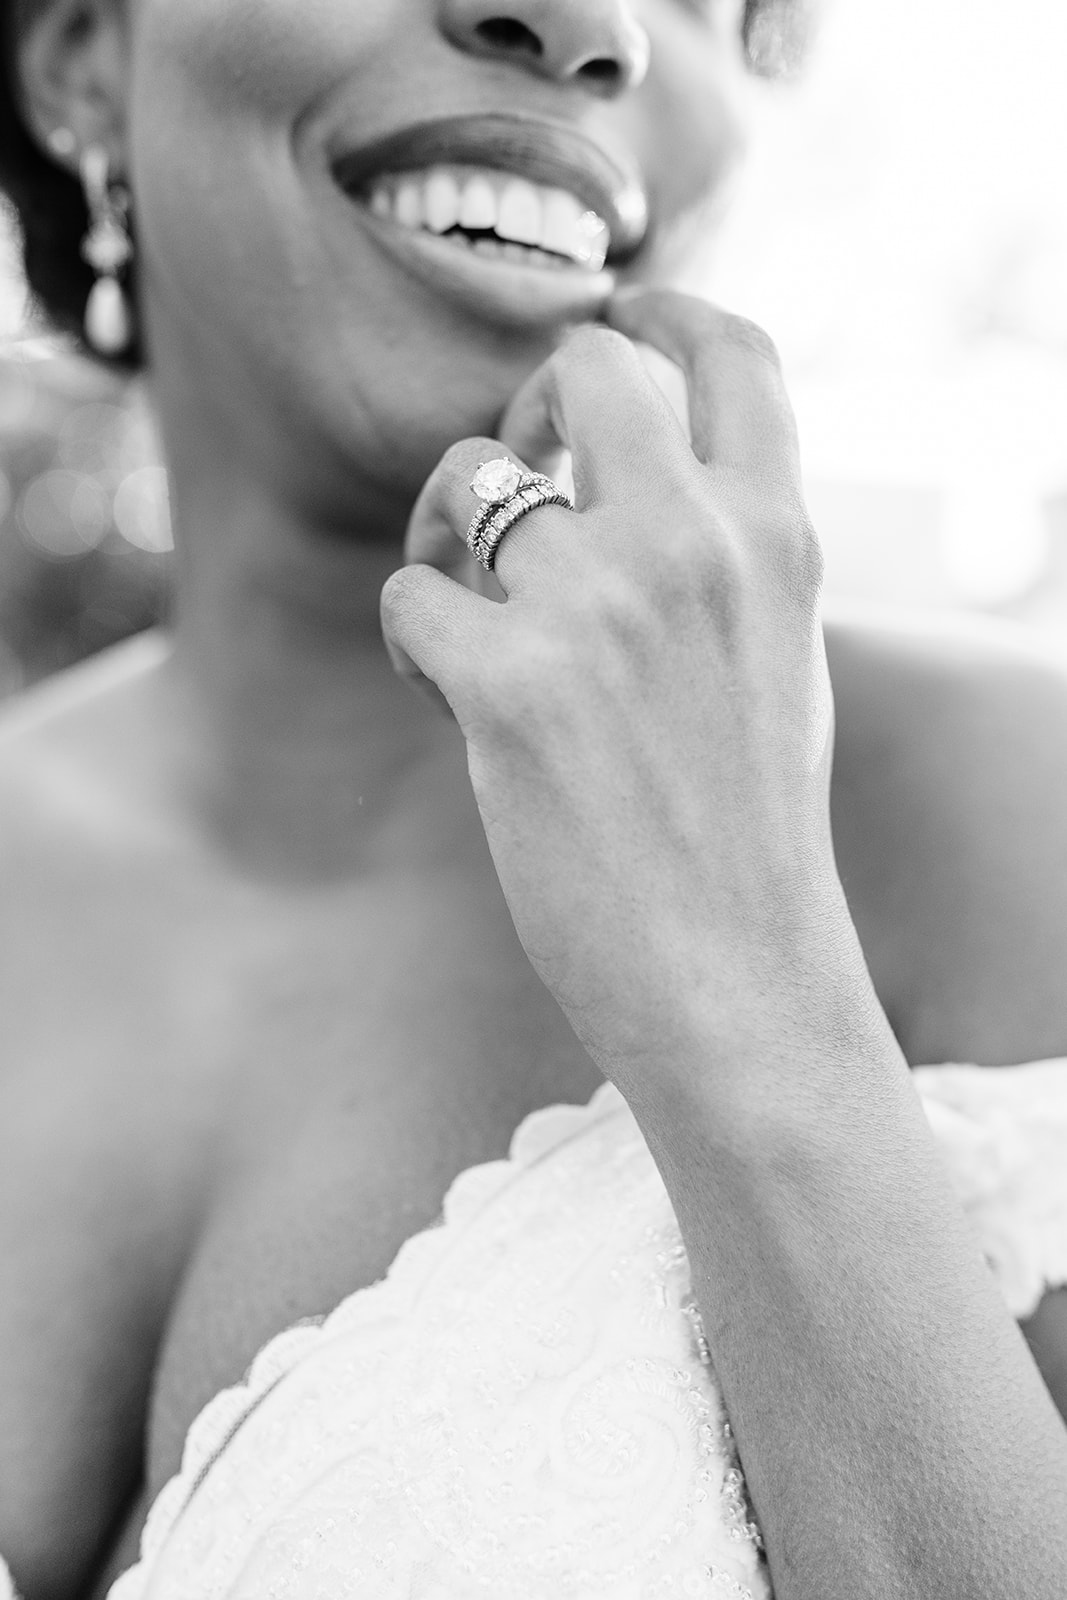 Bride with custom infinity band and diamond solitaire engagement ring